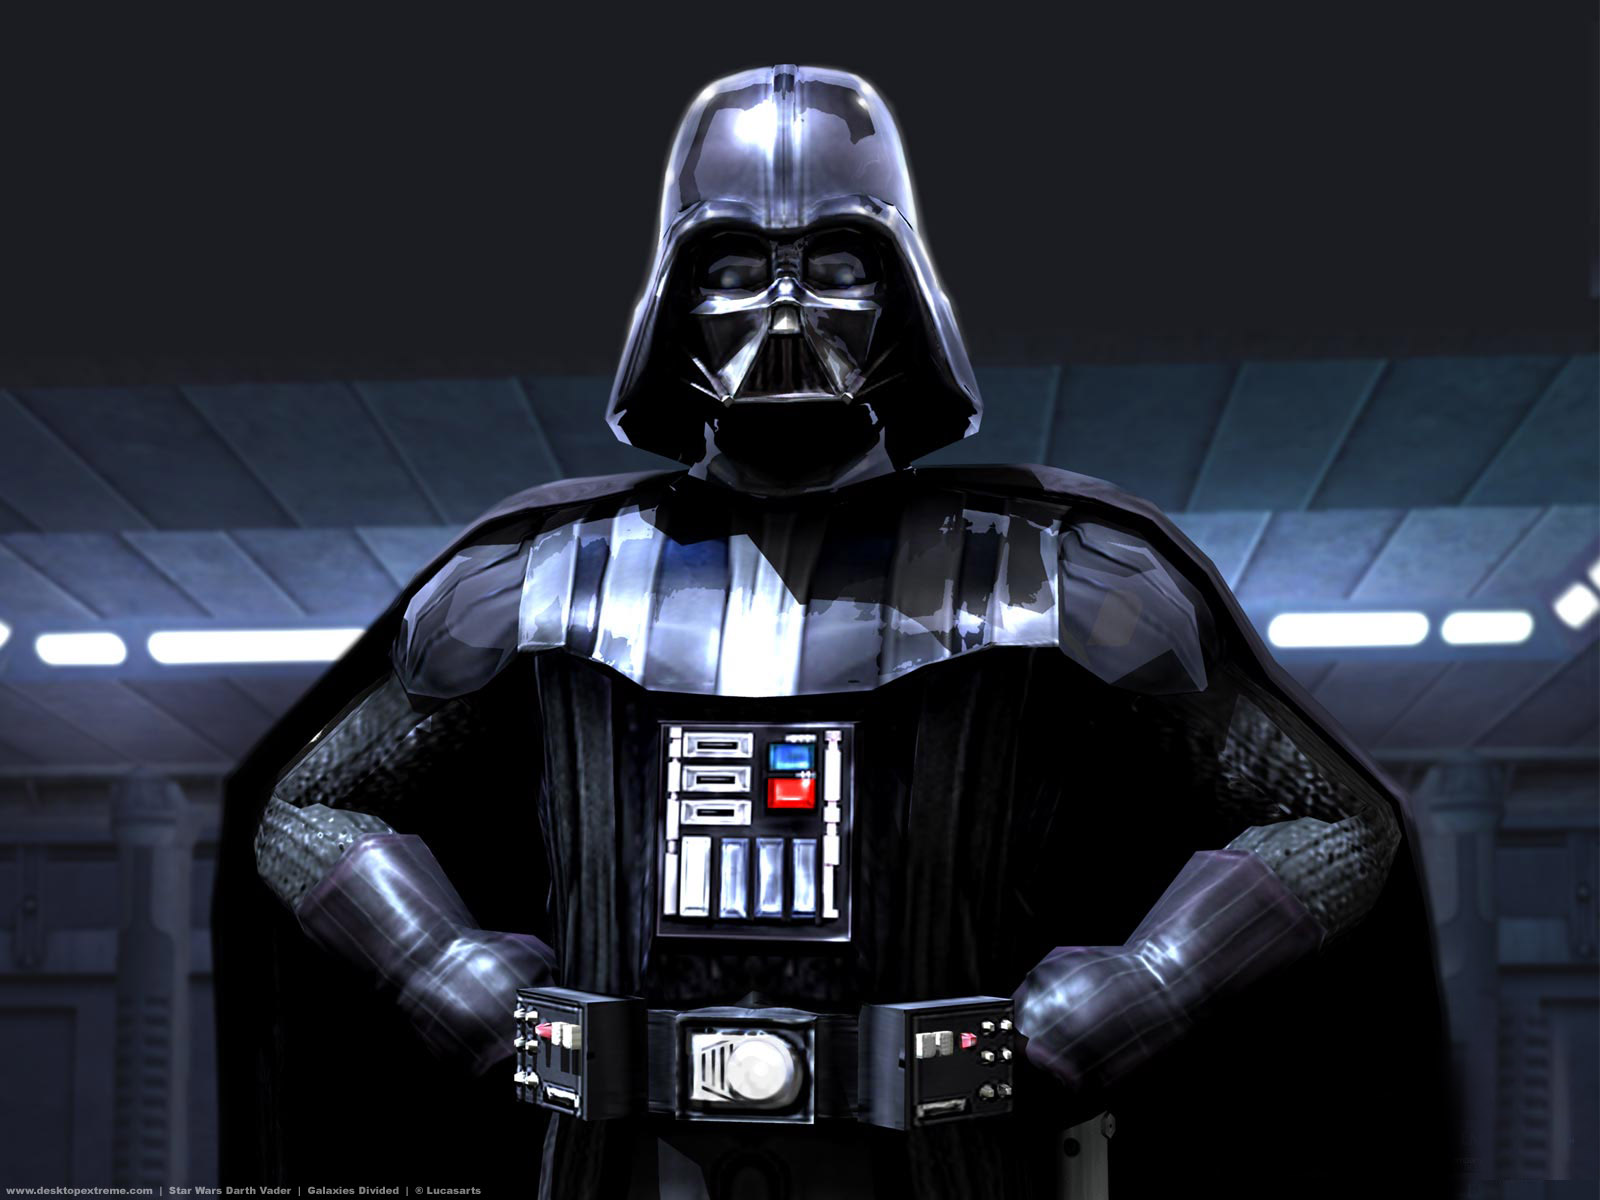 darth-vader-darth-vader-vs-borderline-personality-disorder